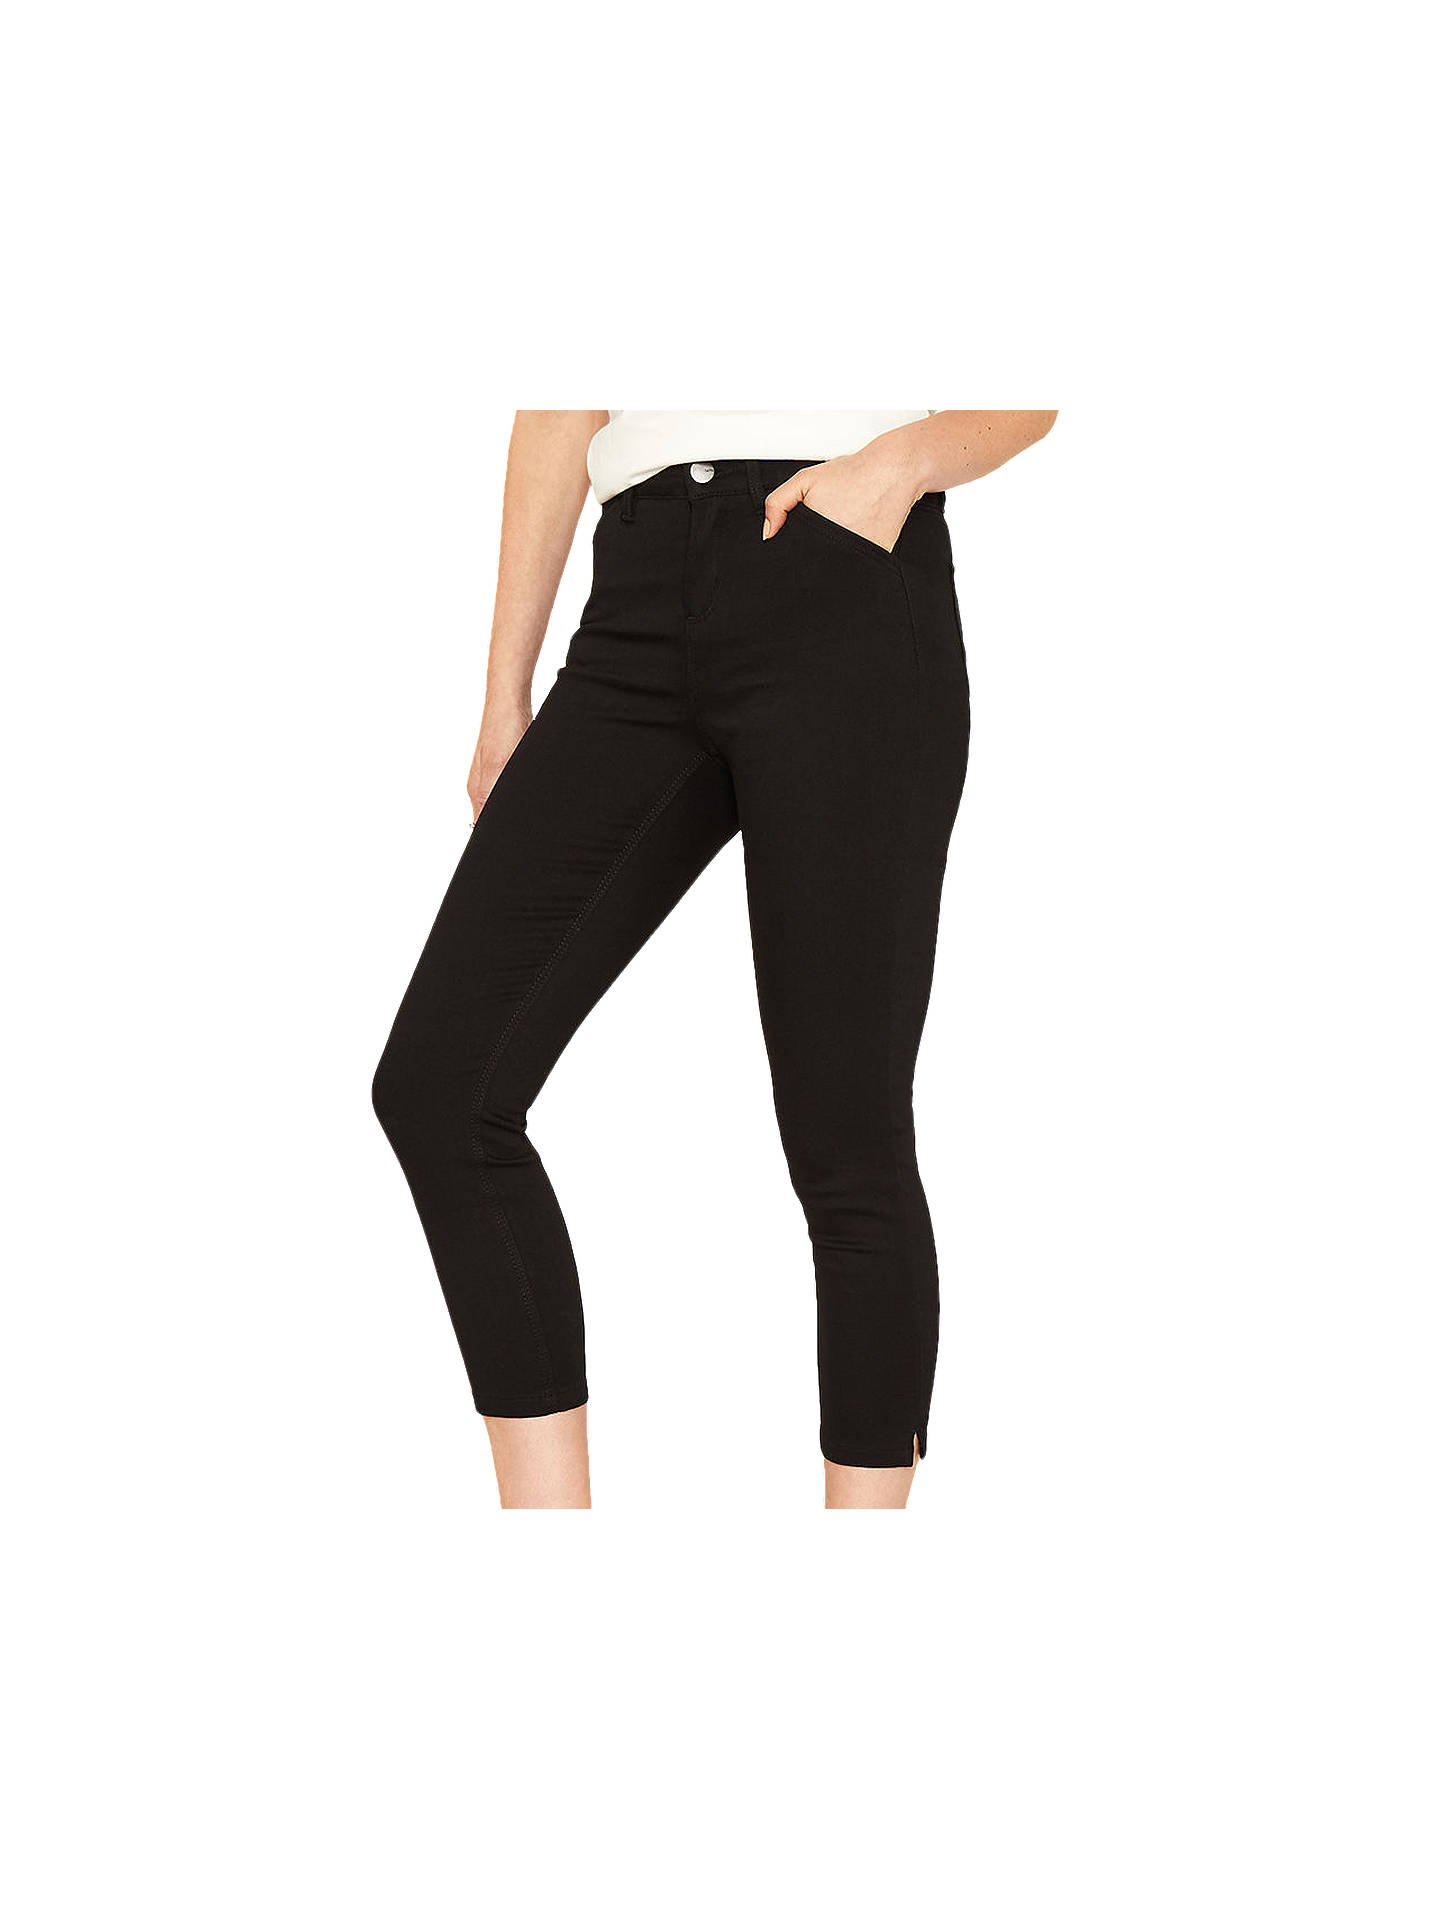 530c2cff7092 Buy Oasis High Waisted Grace Capri Jeans, Black, 6 Online at johnlewis.com  ...